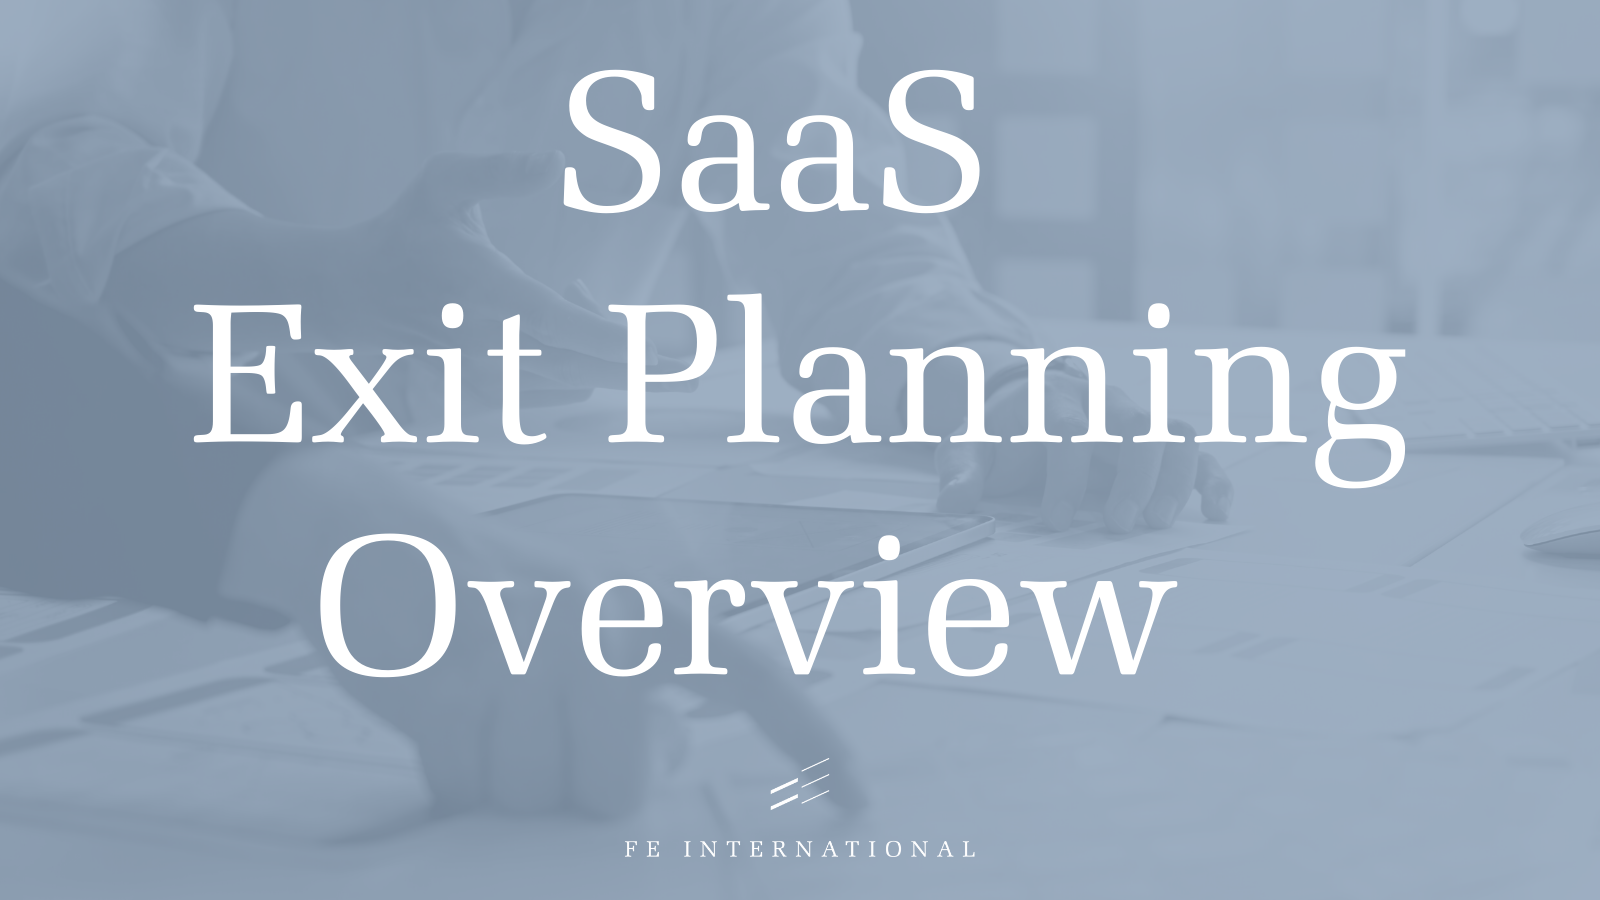 SaaS Exit Planning Overview blog cover